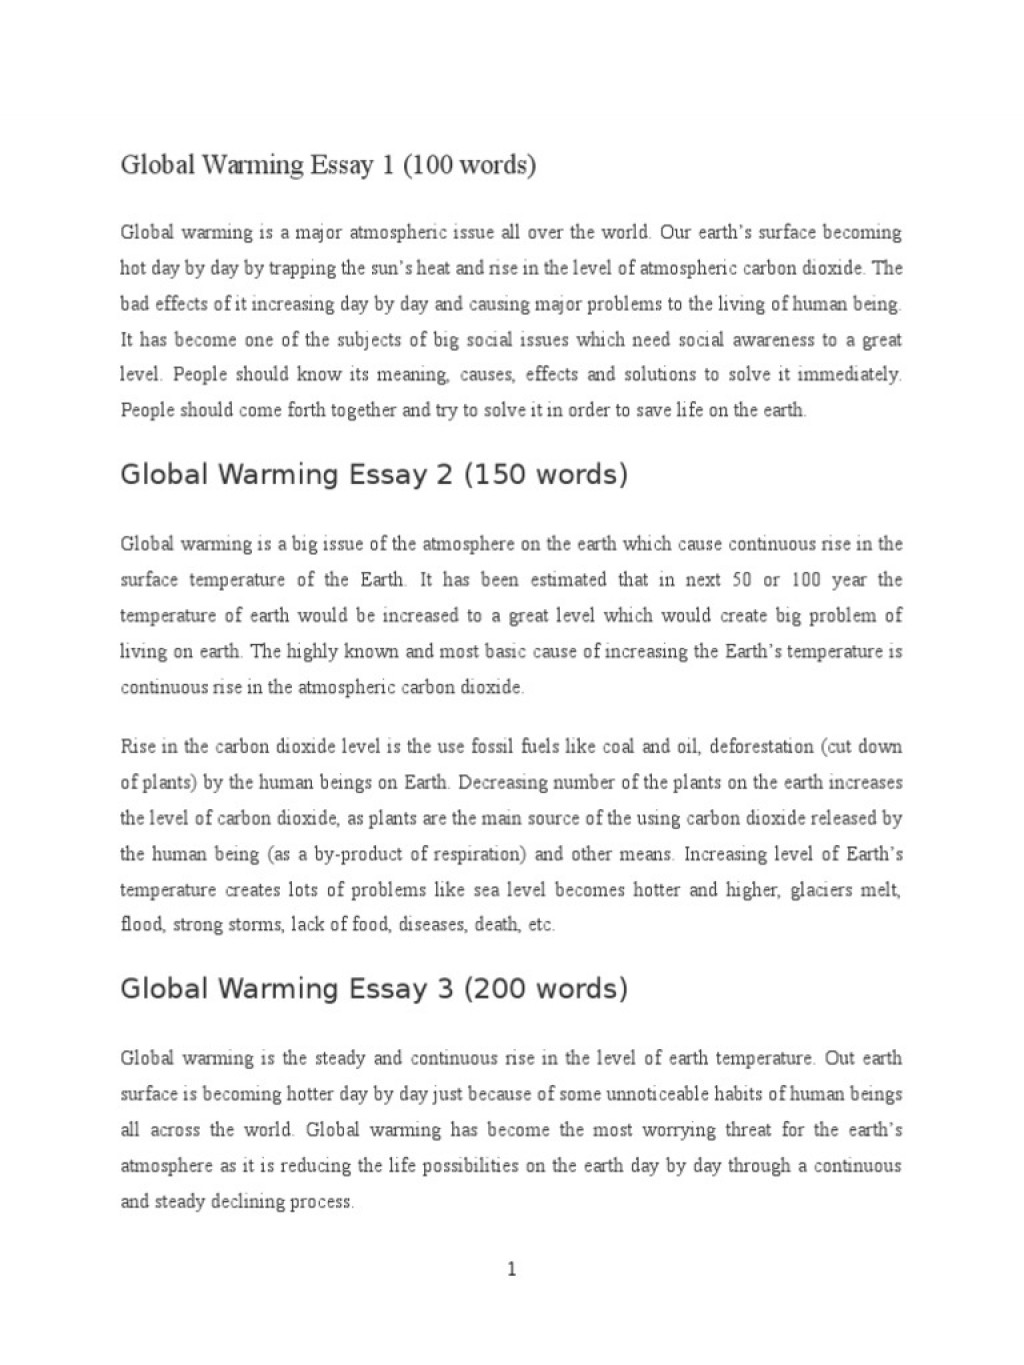 008 Global Warming Essay 1 5882e593b6d87f85288b46ba Unusual Hook Conclusion Outline Large